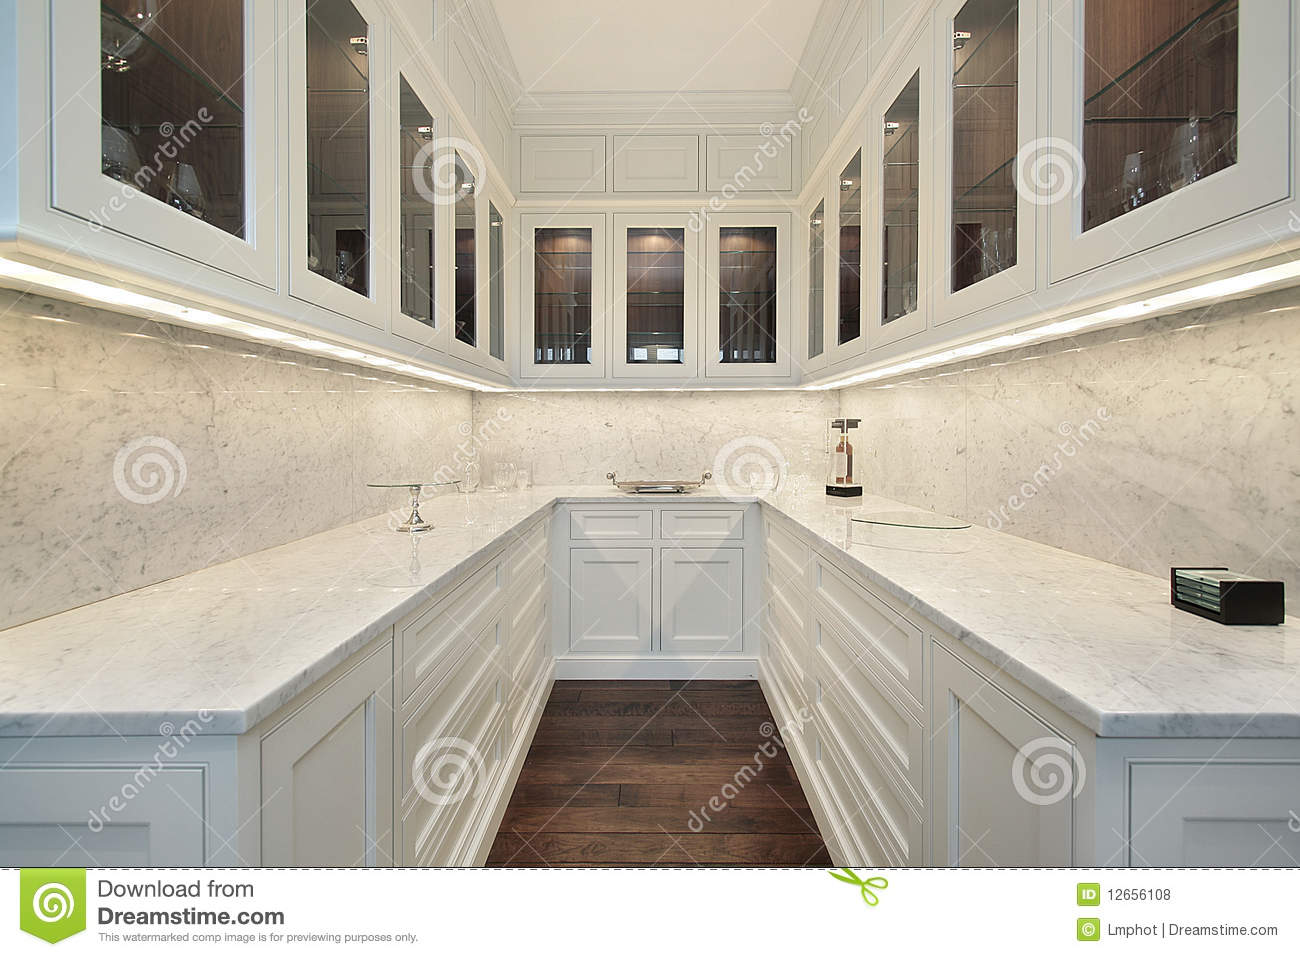 Royalty Free Stock Photos Butler S Pantry Luxury Home Image12656108 on black kitchen pantry cabinets free standing